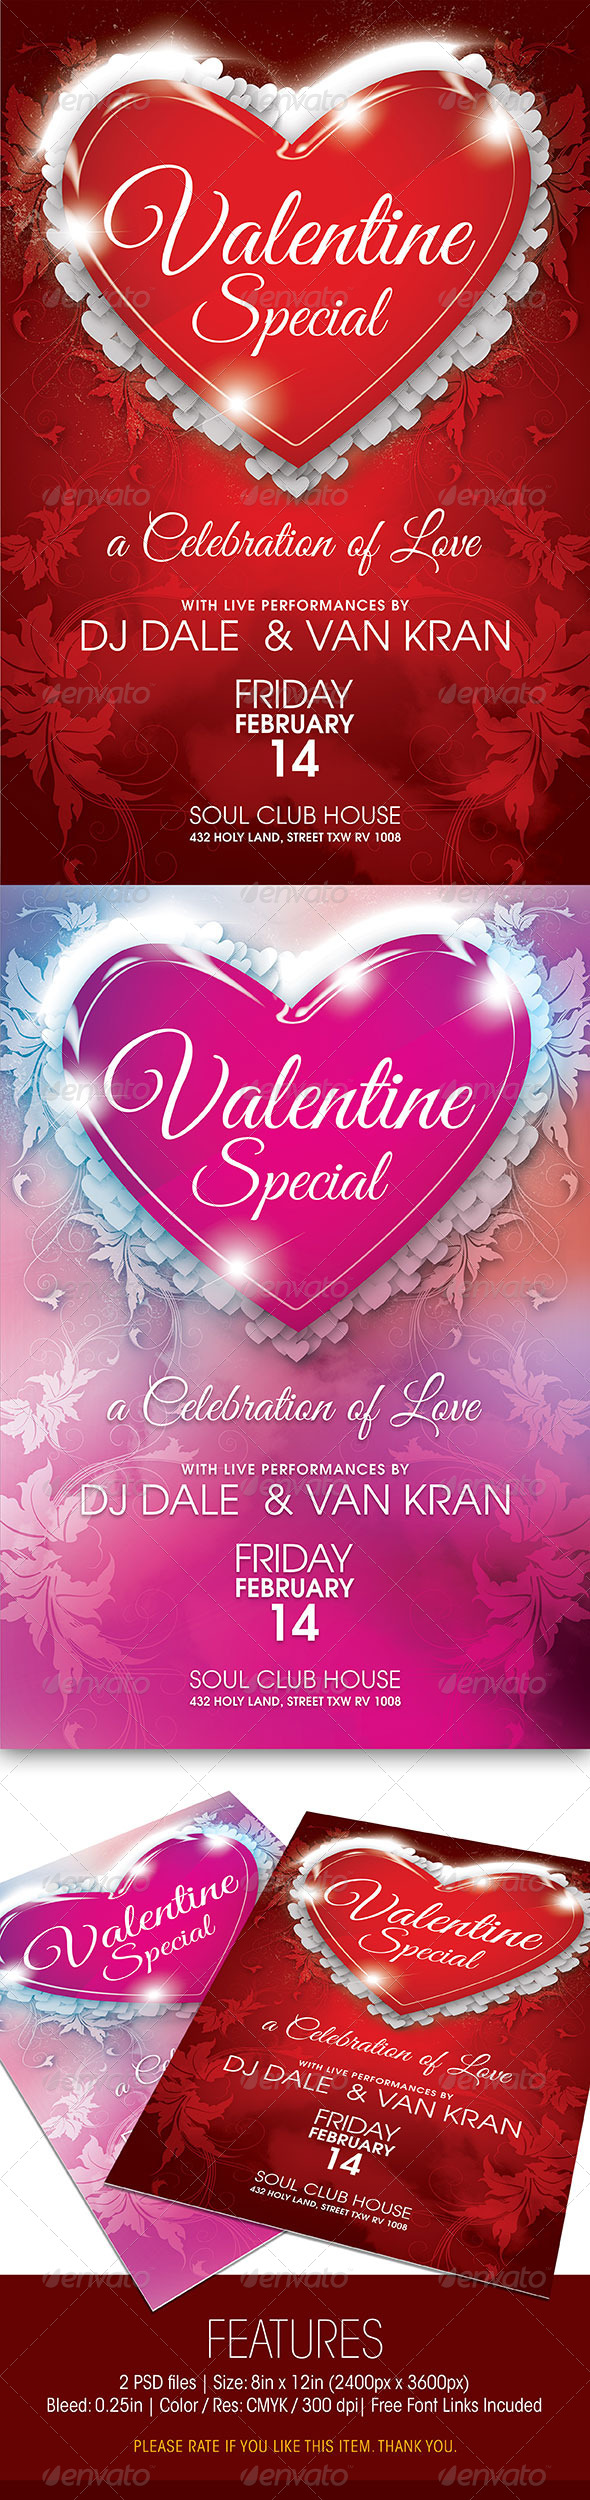 GraphicRiver Valentine Special Party Flyer 6508753